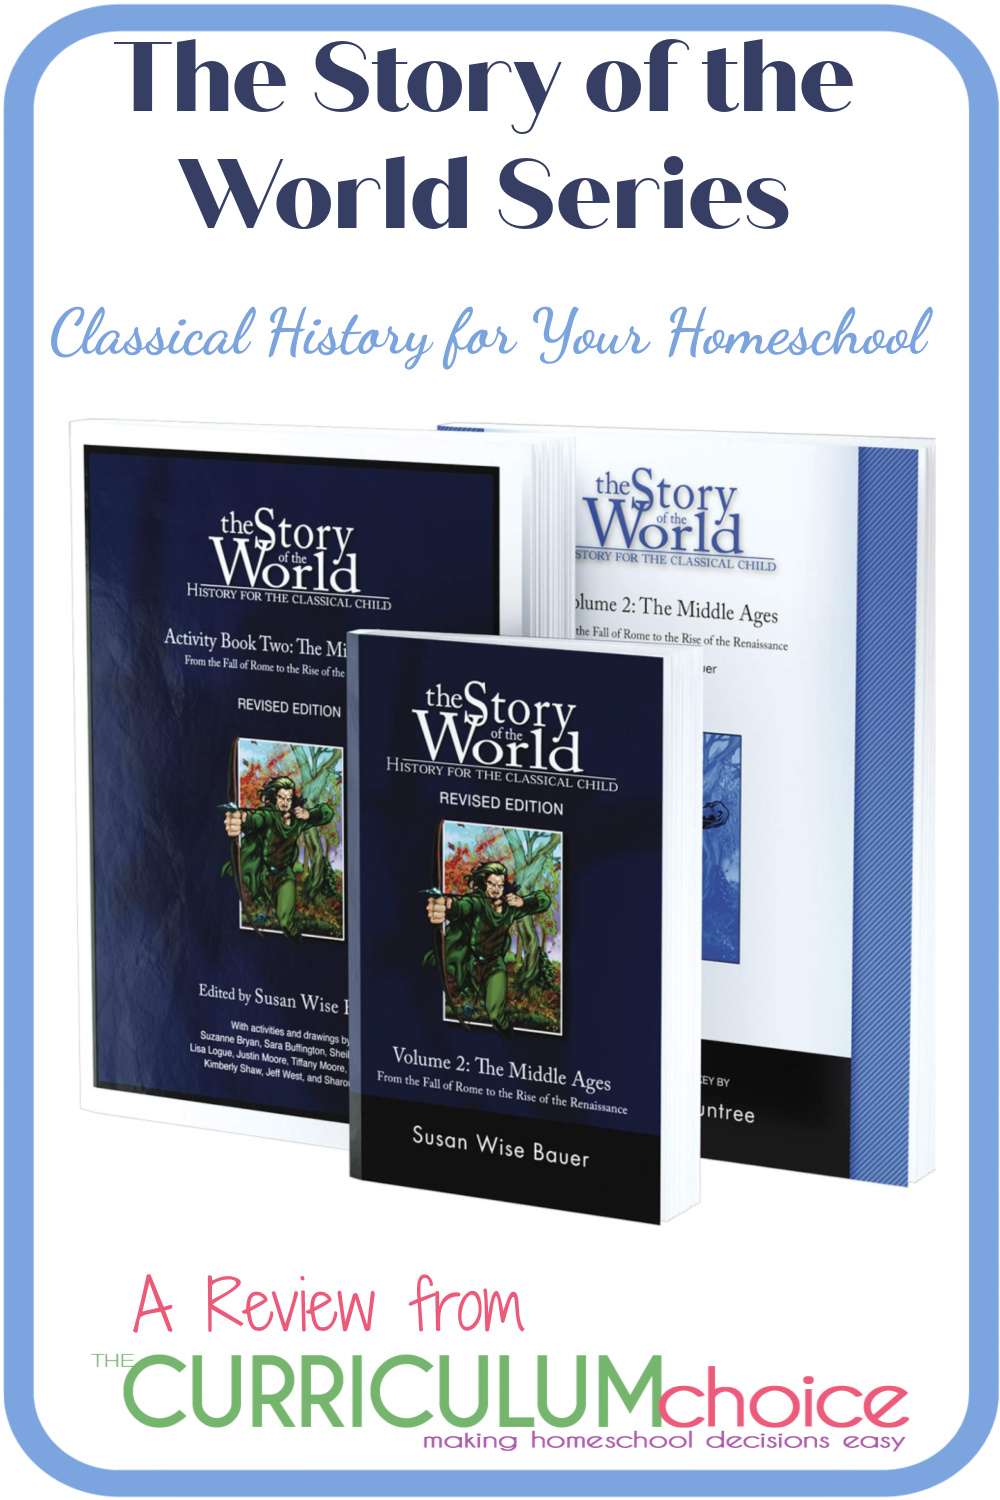 The Story of The World series - classical history curriculum that spans human history from nomads to modern times for your homeschool. A Review from The Curriculum Choice